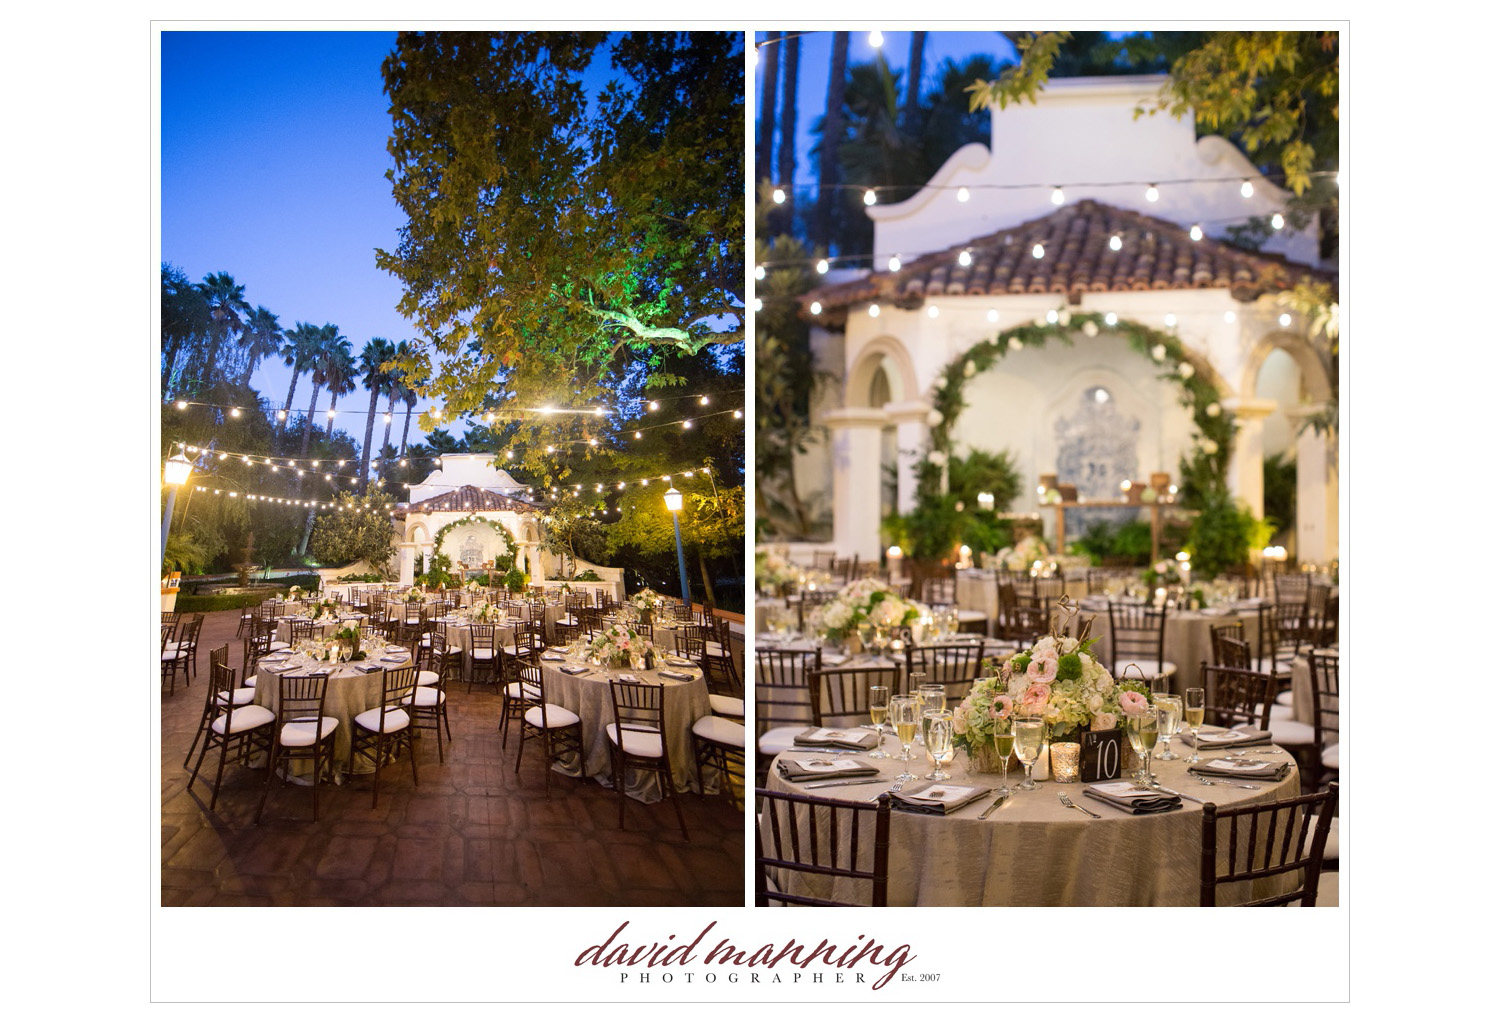 The-Montage-Rancho-Las-Lomas-Wedding-David-Manning-Photographers130921-0044.jpg